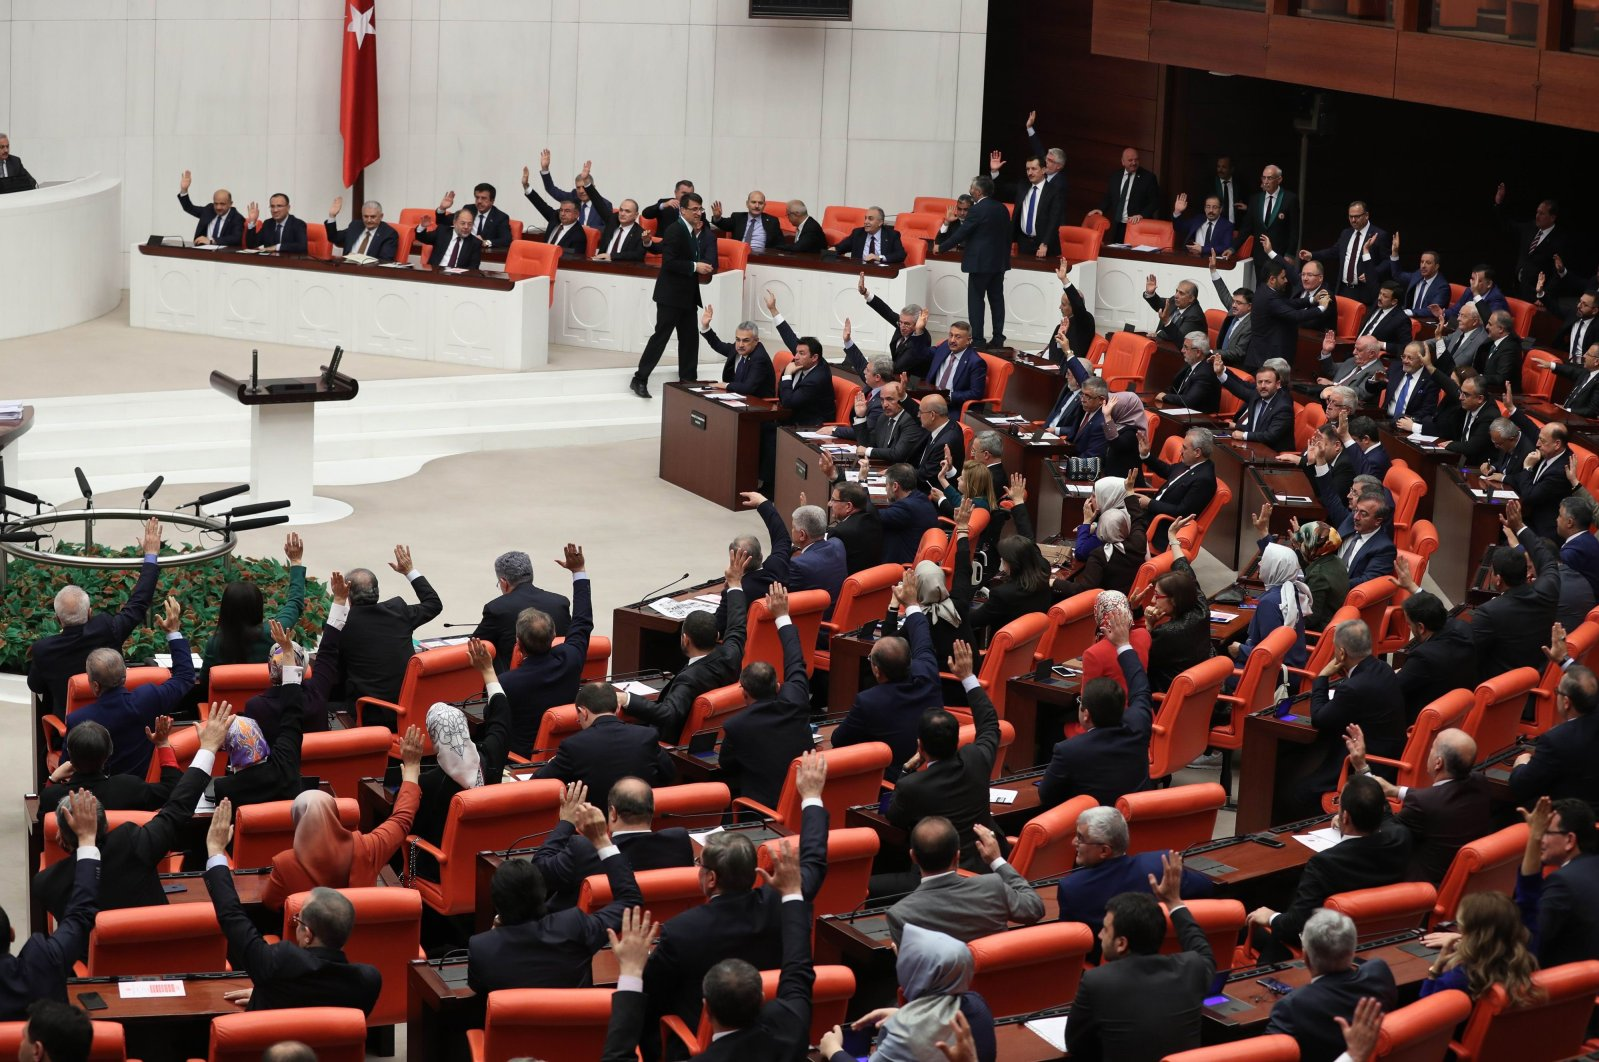 Turkish deputies take part in a vote for the proposed early presidential and parliamentary elections during the general assembly of the Grand National Assembly of Turkey in Ankara, Turkey, April 20, 2018. (AFP Photo)